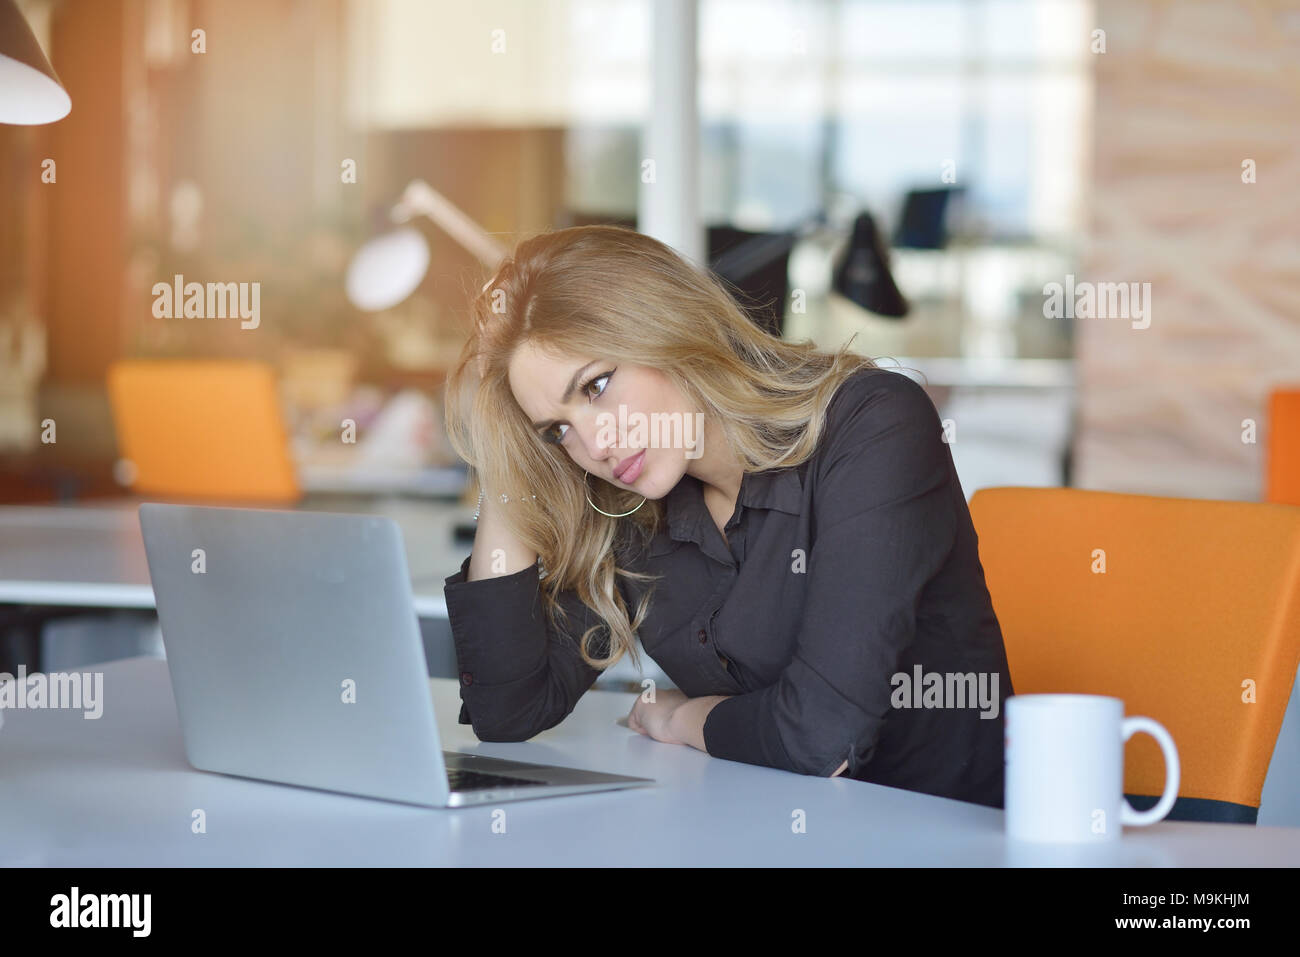 Young busy beautiful latin business woman suffering stress working at office computer - Stock Image